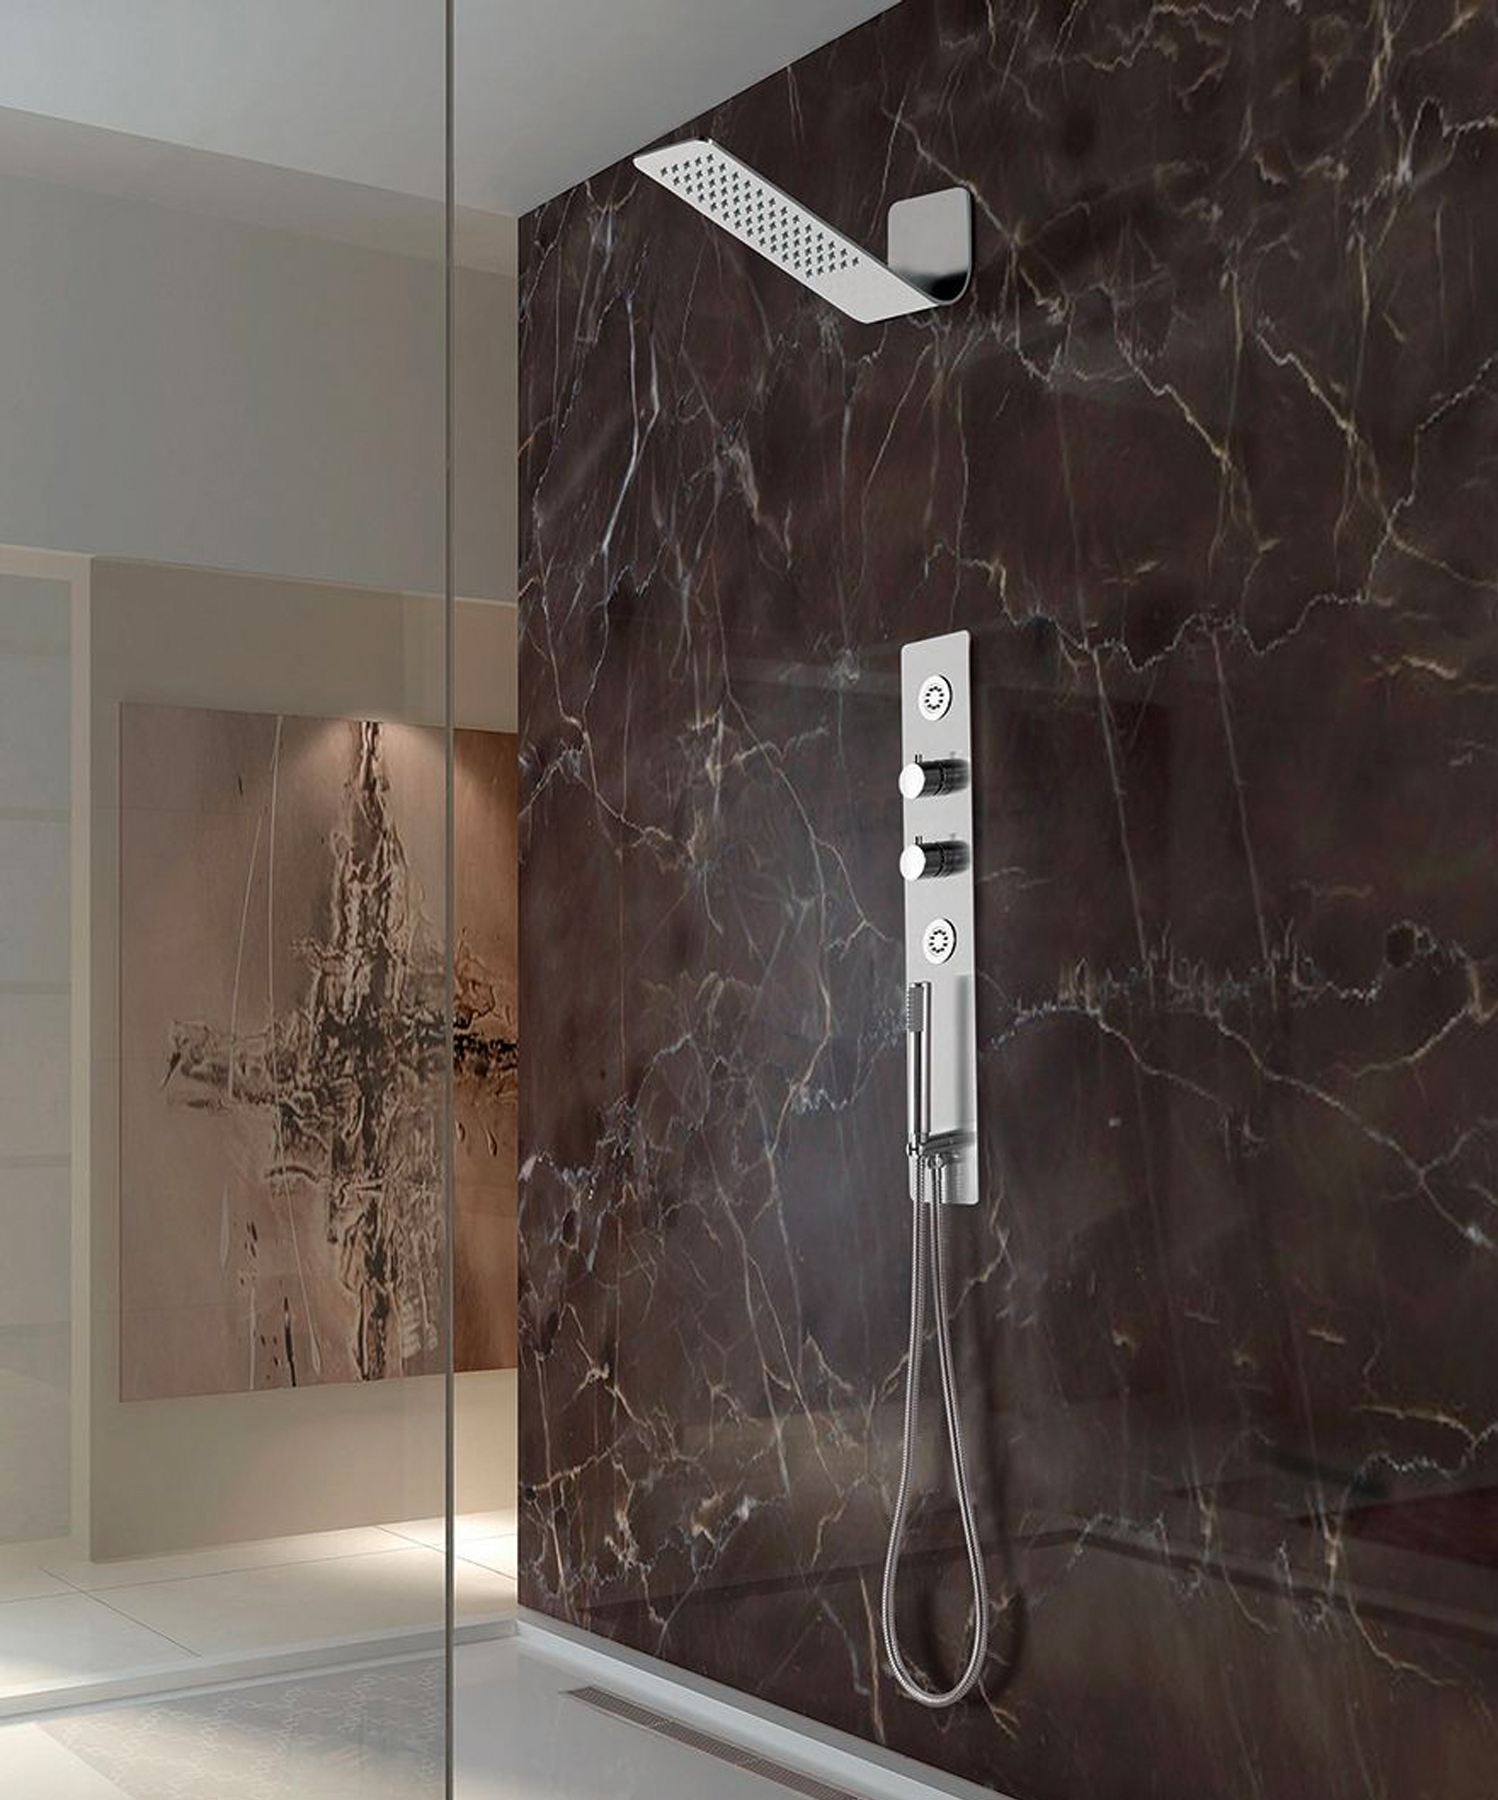 Lenova launched its Thermostatic shower system.